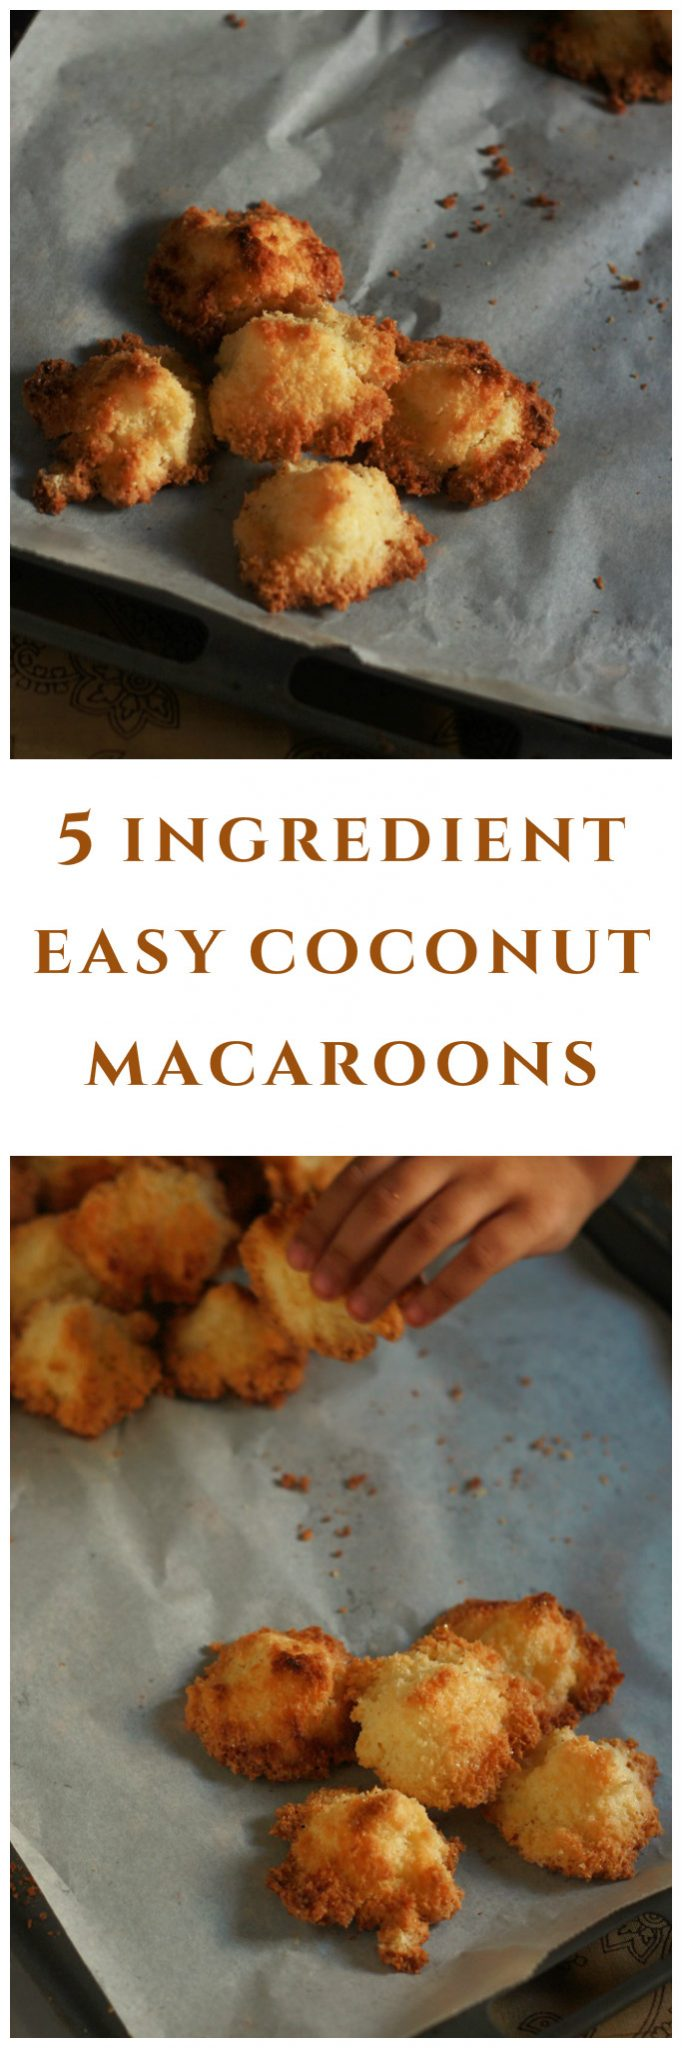 Easy Coconut Macaroon. This has to be one of the most easiest and simple to gather ingredients recipe of coconut macaroons. #coconutmacaroons #halalrecipes #coconutcookie #easymacaroons